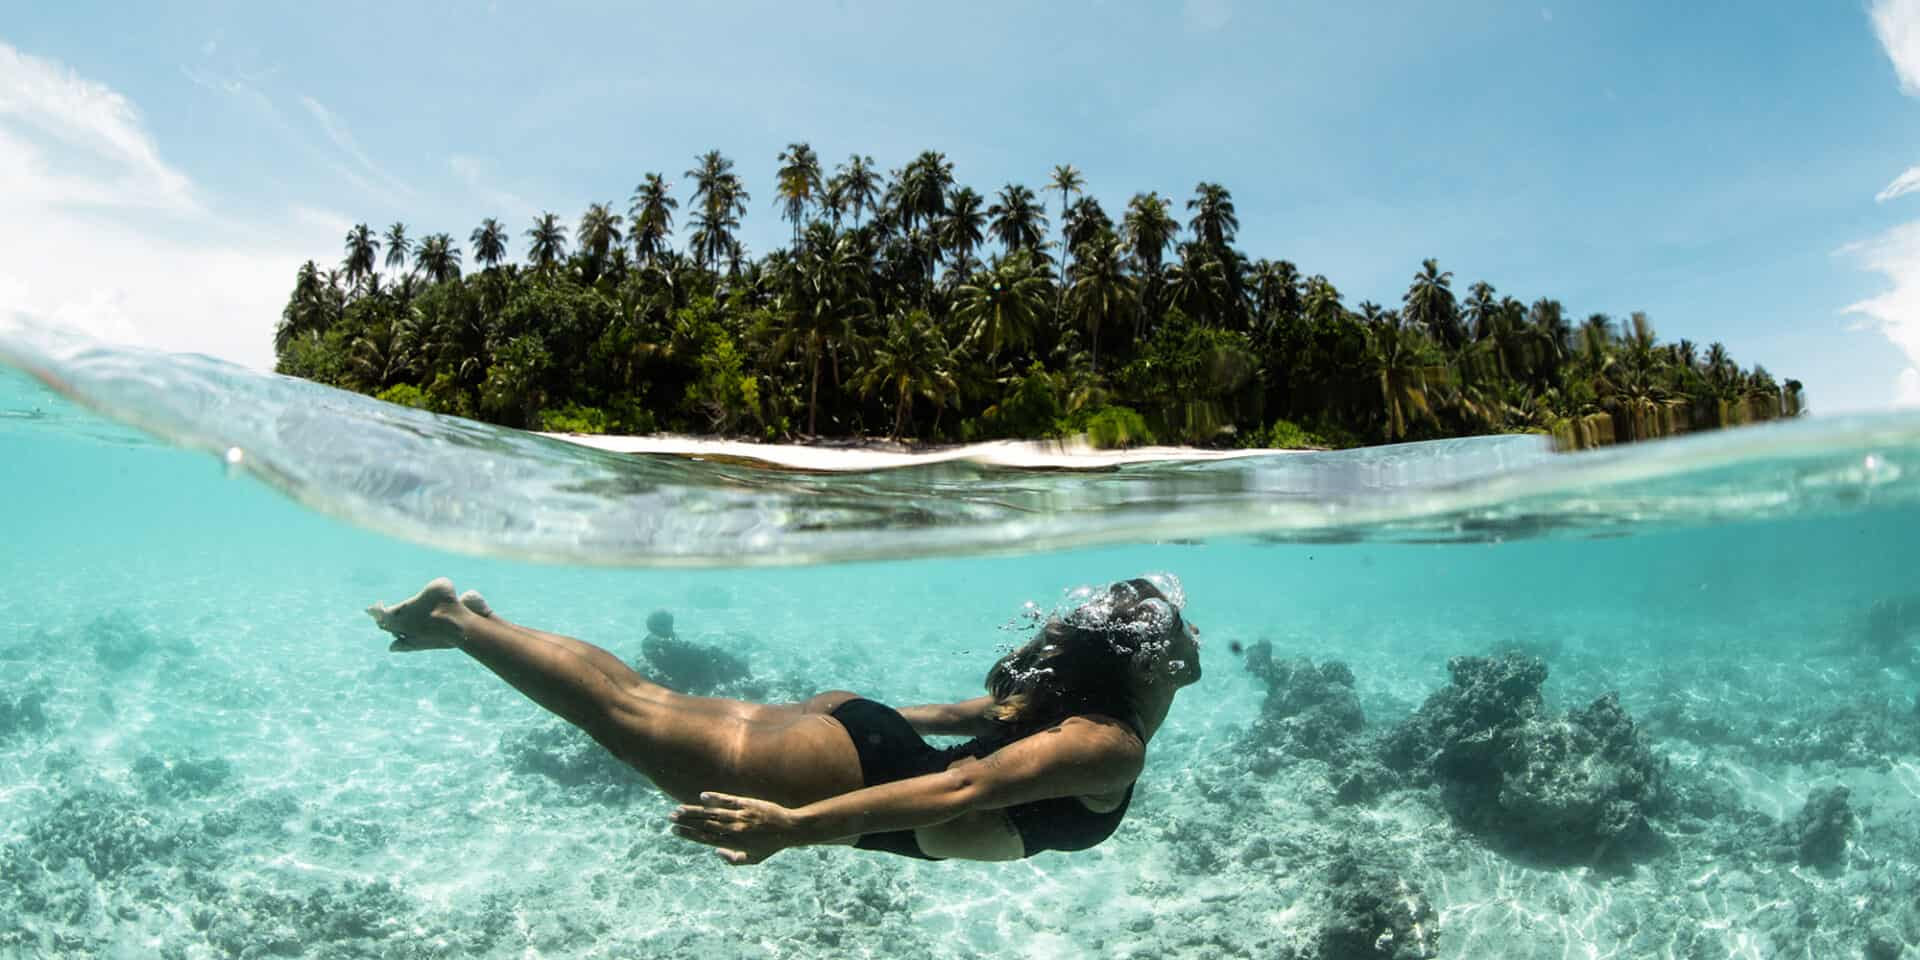 mentawai islands surfing indonesia ments mentawais surf one breathe images